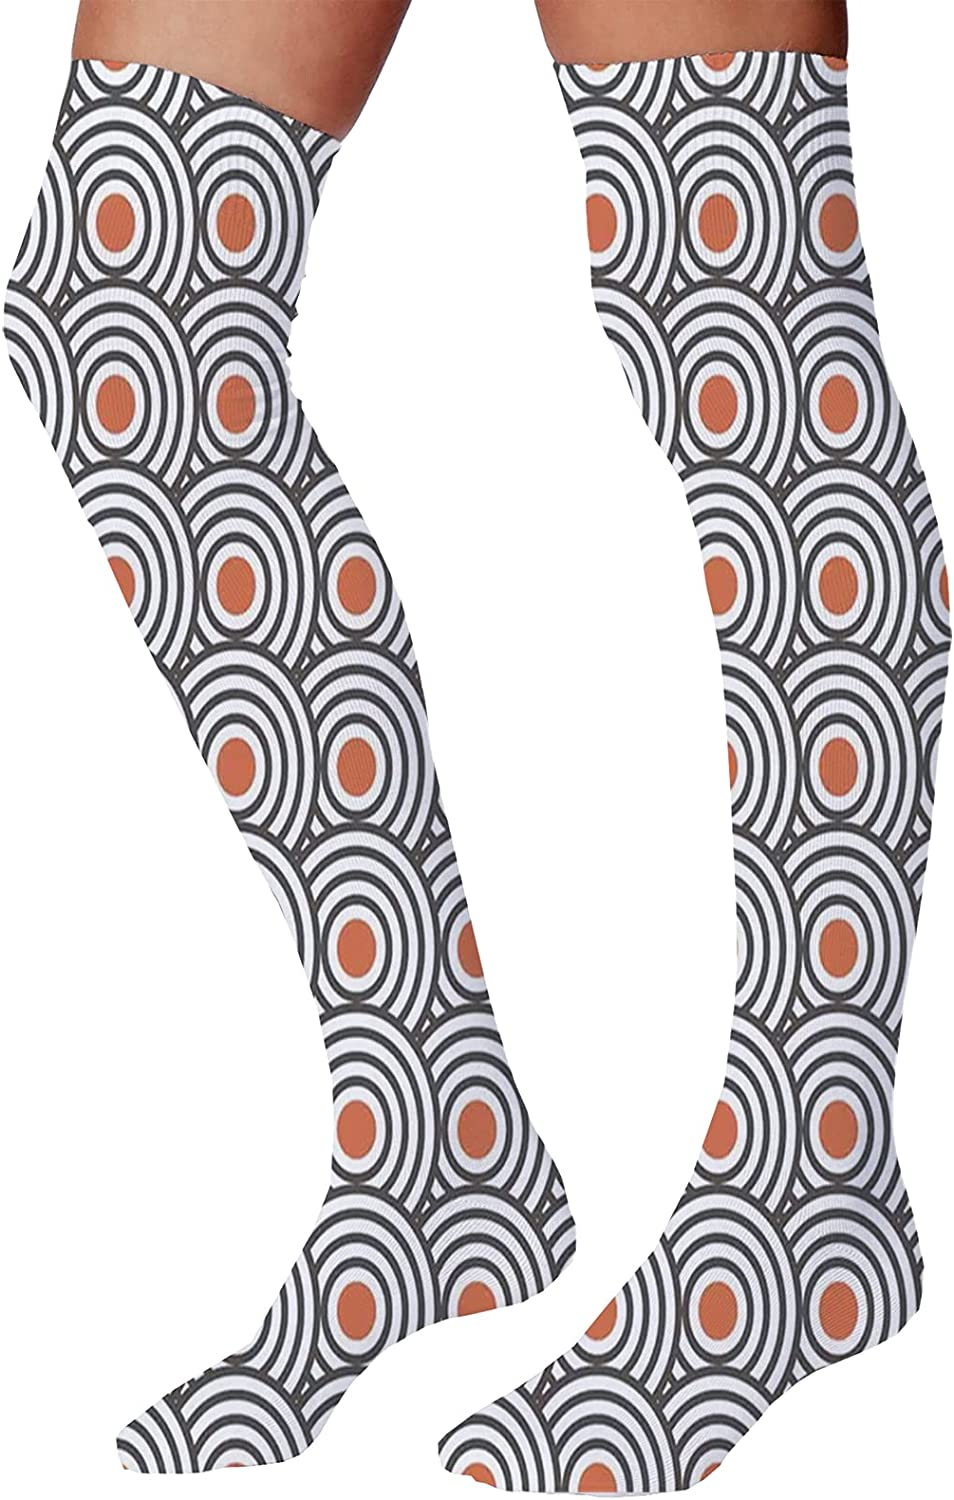 Men's and Women's Fun Socks,Neoclassical Borders Composition Meander Pattern and Flowers with Waves